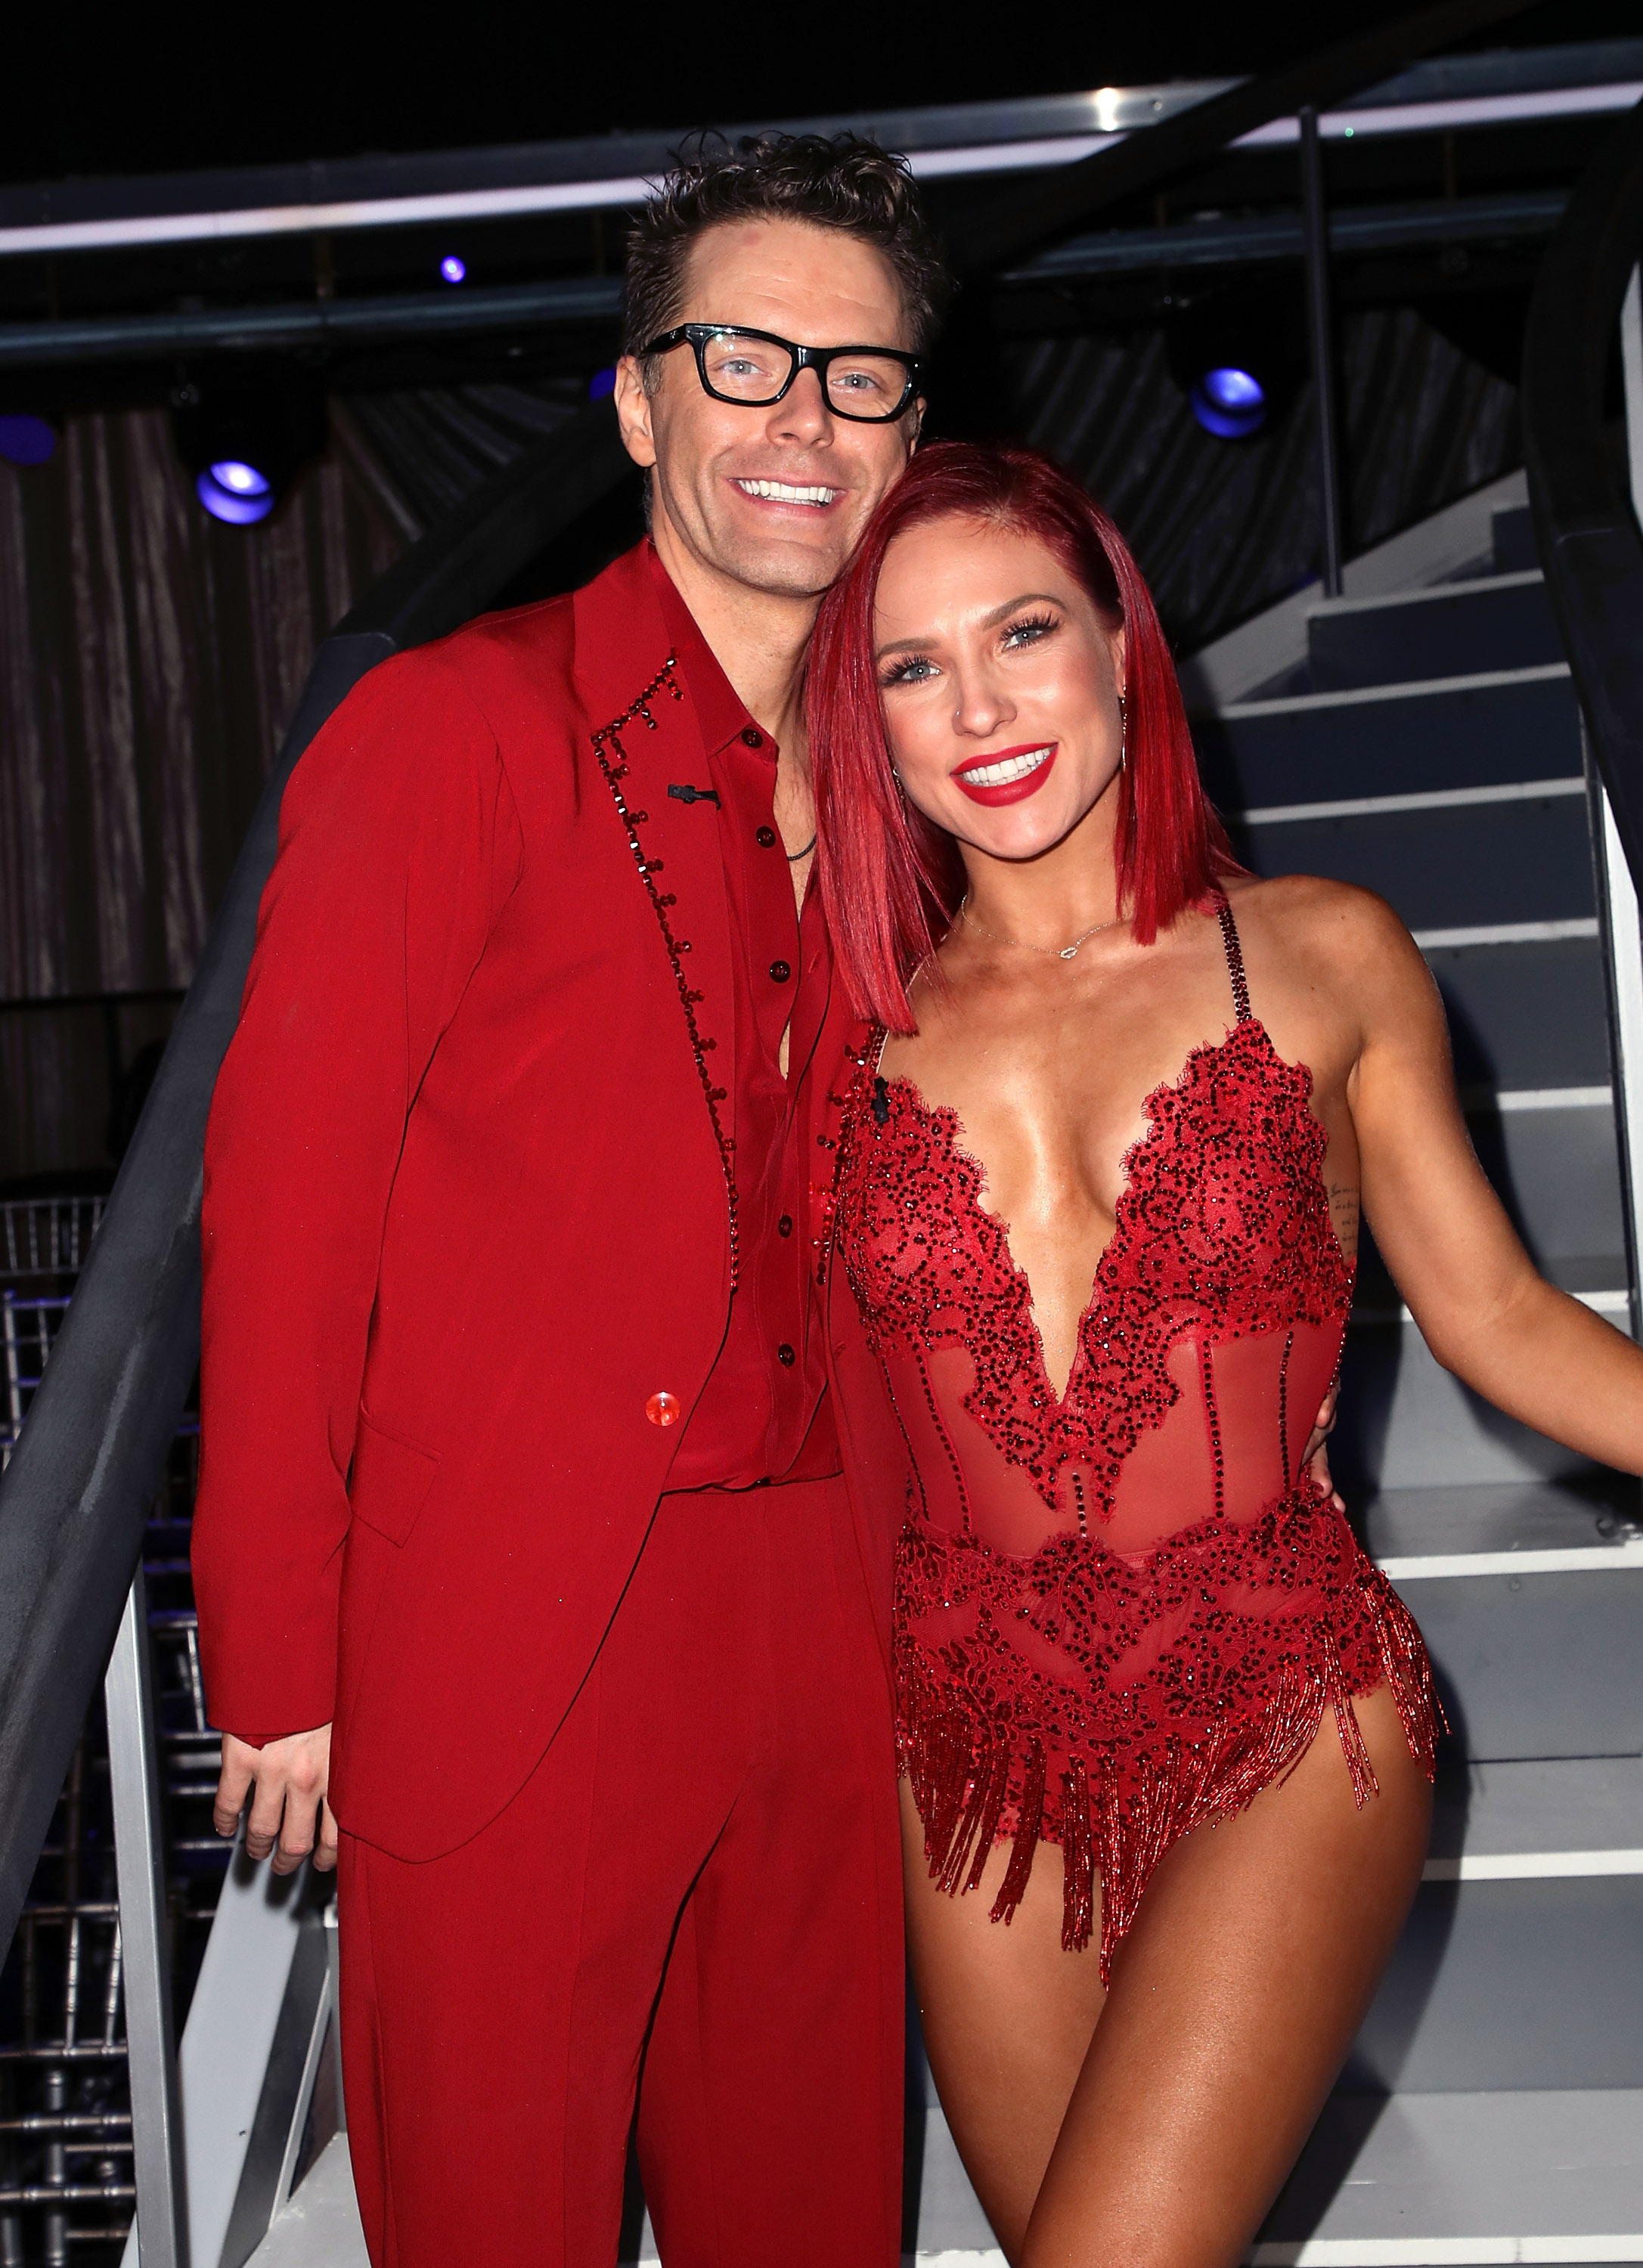 Bobby Bones (L) and Sharna Burgess pose at 'Dancing with the Stars' Season 27 at CBS Televison City on September 24, 2018 in Los Angeles, California.